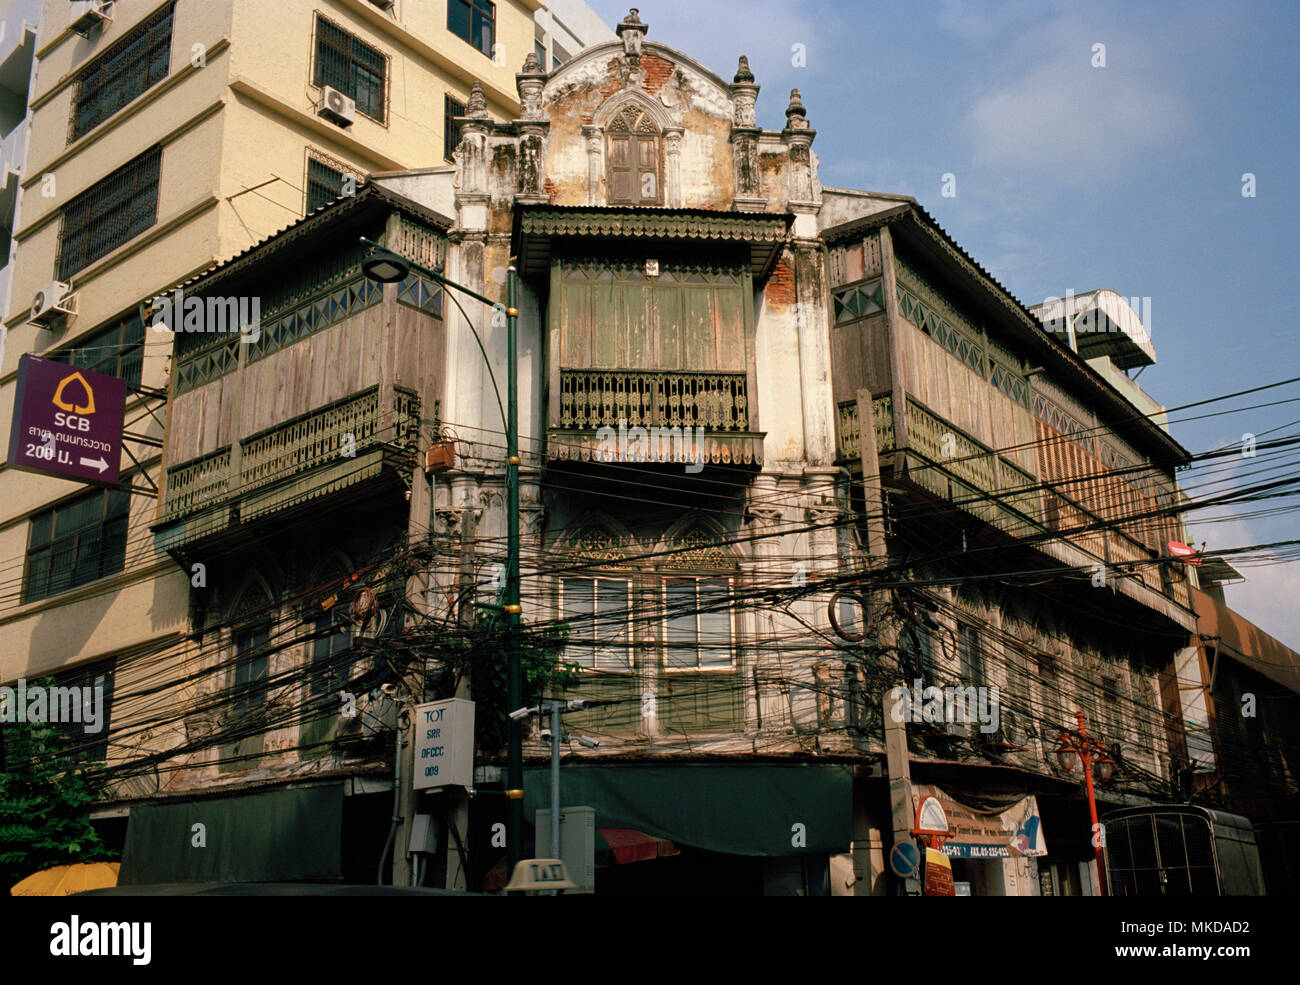 Thai Buildings - Shophouse building in Chinatown in Bangkok in Thailand in Southeast Asia Far East. Shophouses House Chinese Architecture Travel - Stock Image